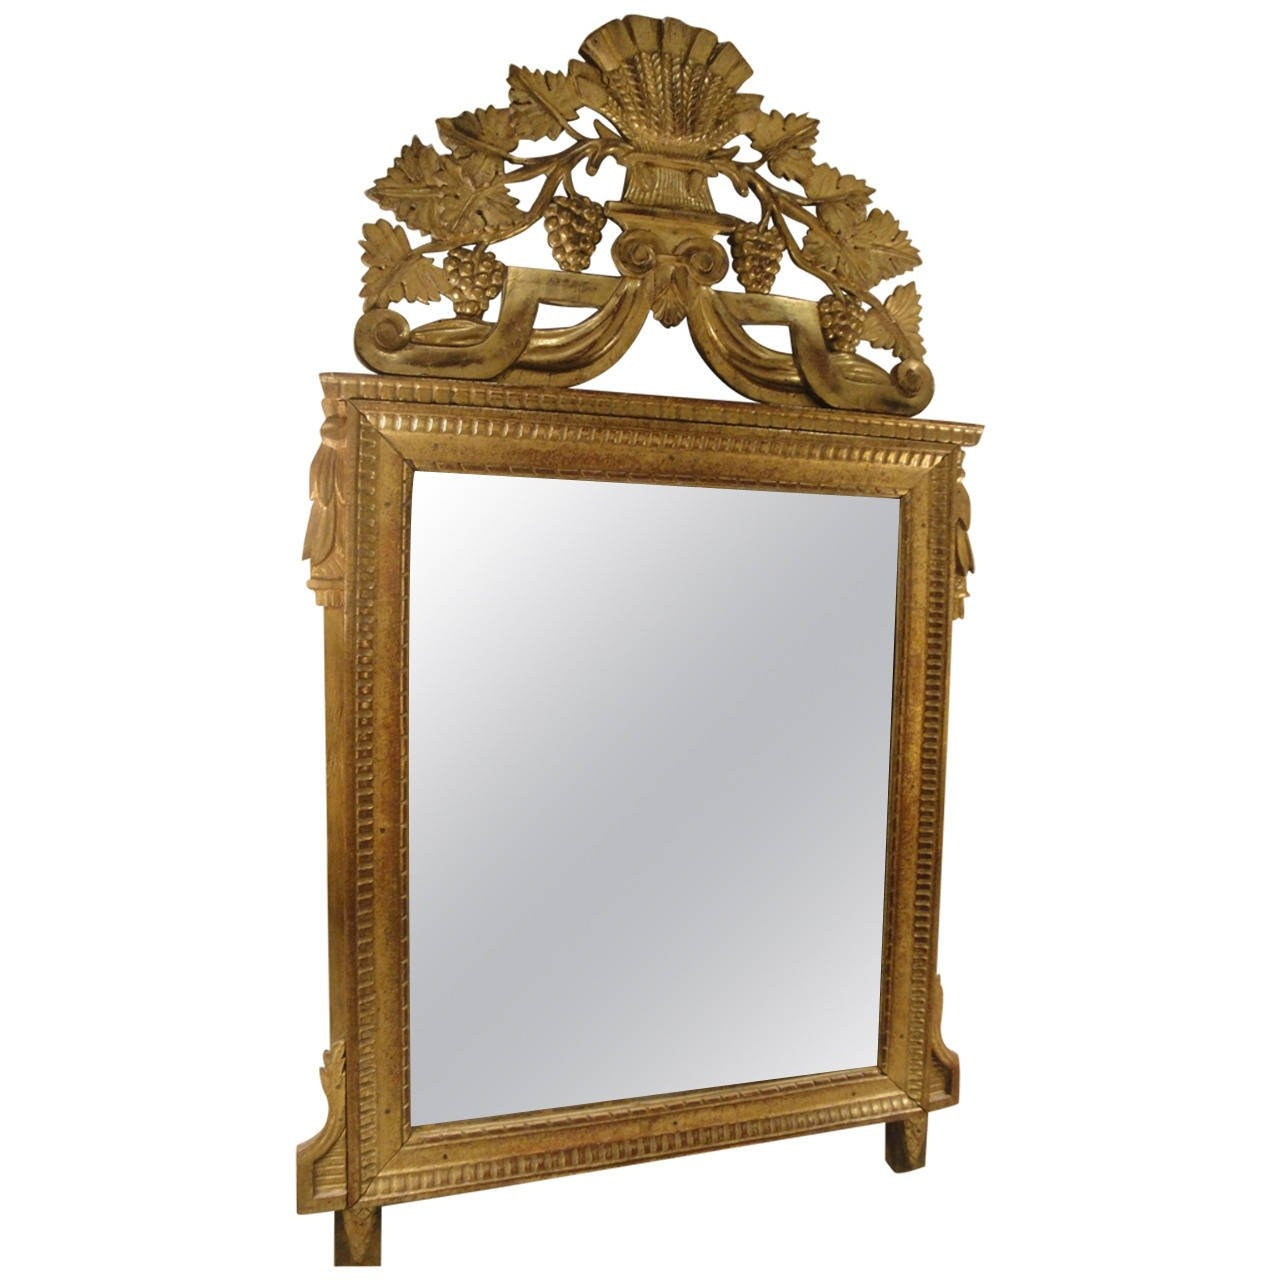 18th Century French Gilded Mirror For Sale At 1stdibs Pertaining To Gilded Mirrors For Sale (View 8 of 15)